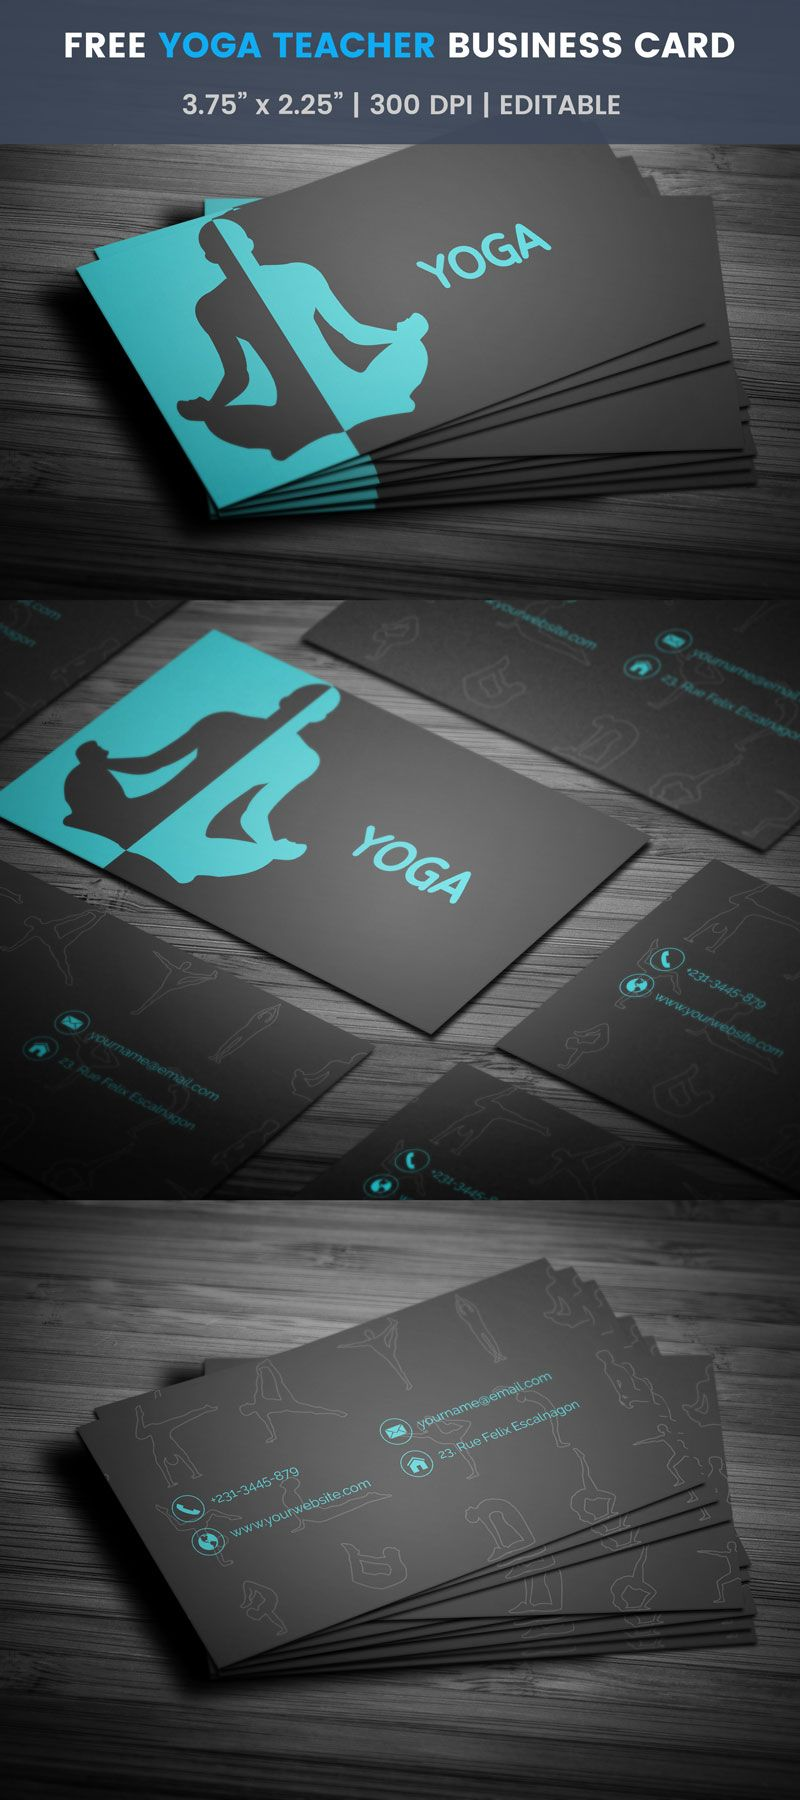 Free yoga teacher business card teacher business cards yoga free yoga teacher business card template edit online download reheart Image collections